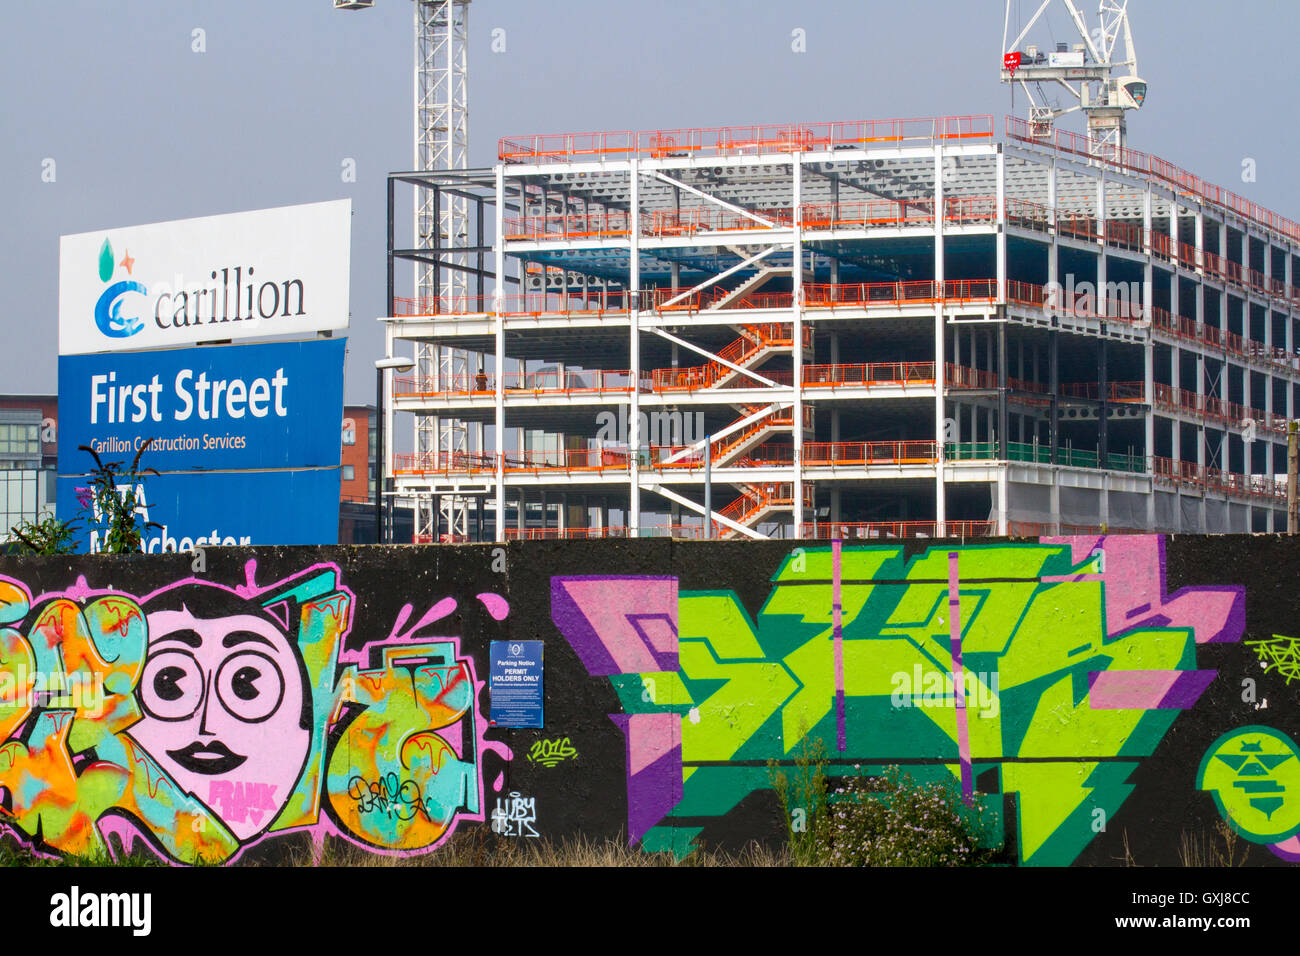 First Street Carillon developments, hoardings, muraks and high-rise buildings in the Castlefield area of 1st Street Stock Photo